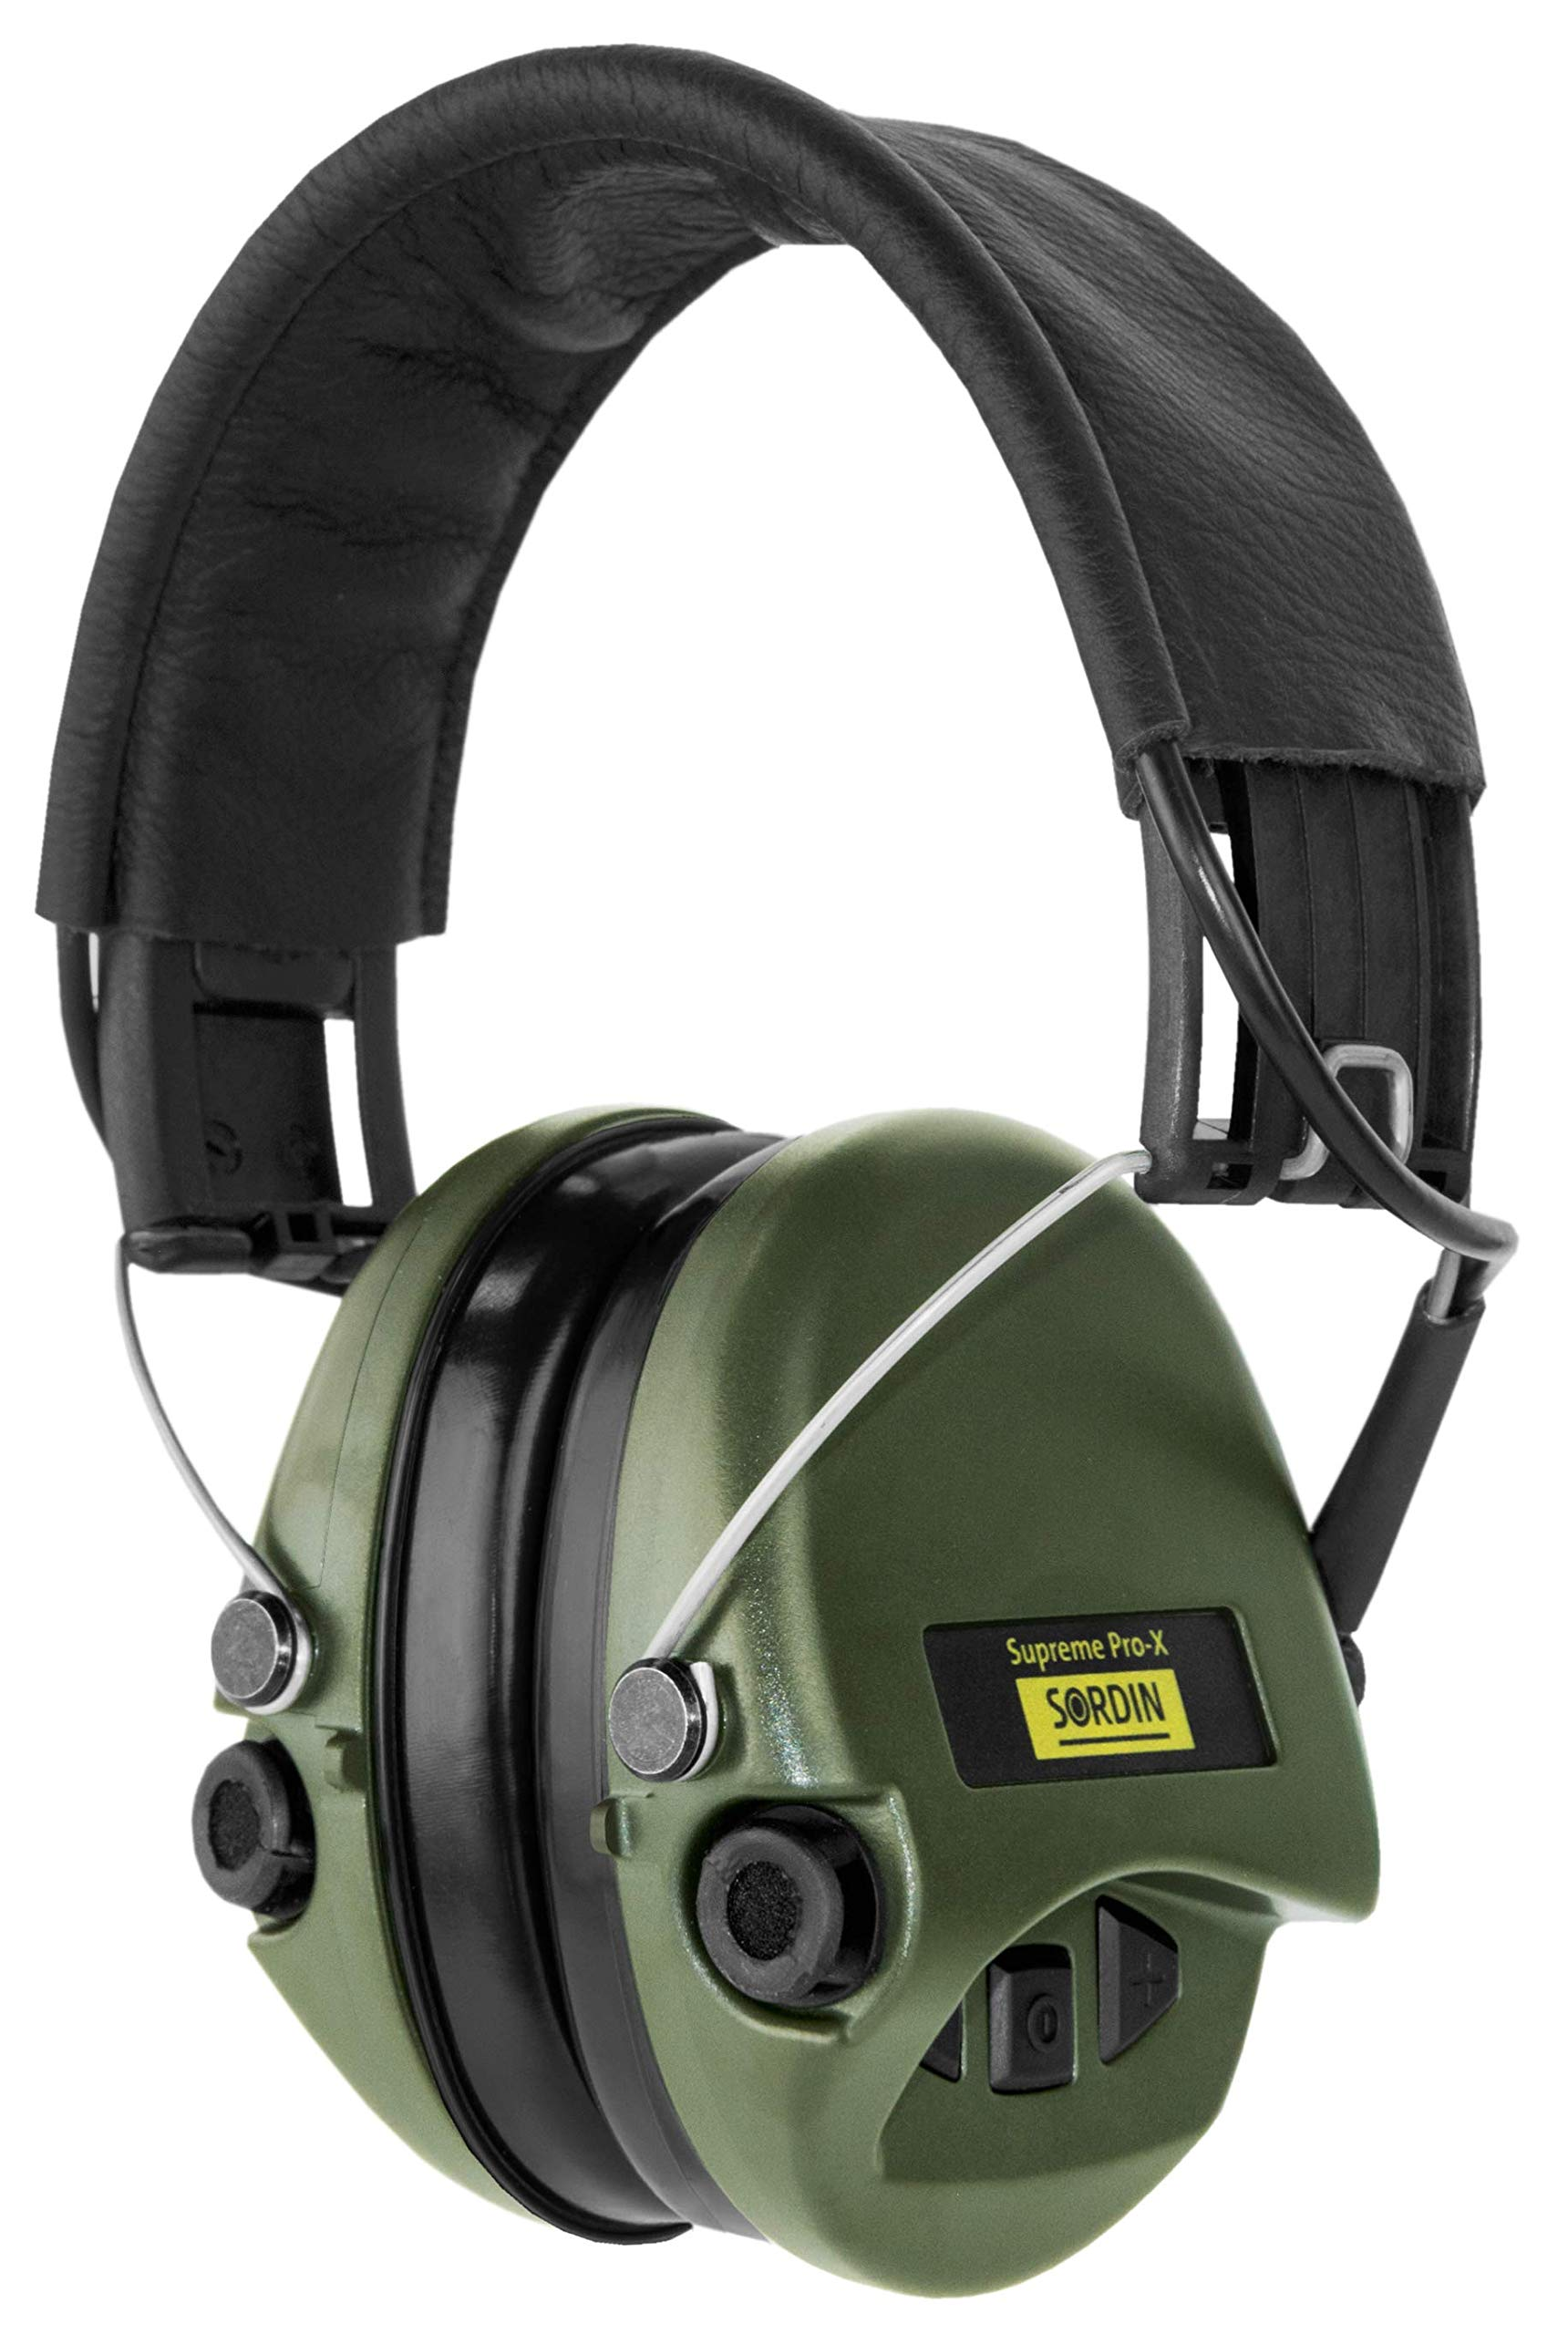 Sordin Supreme PRO X, Noise Reduction Safety Ear Muffs, Adjustable Hearing Protection for Shooting, Hunting, and Work, SNR: 25dB, Leather Headband, Green Cups